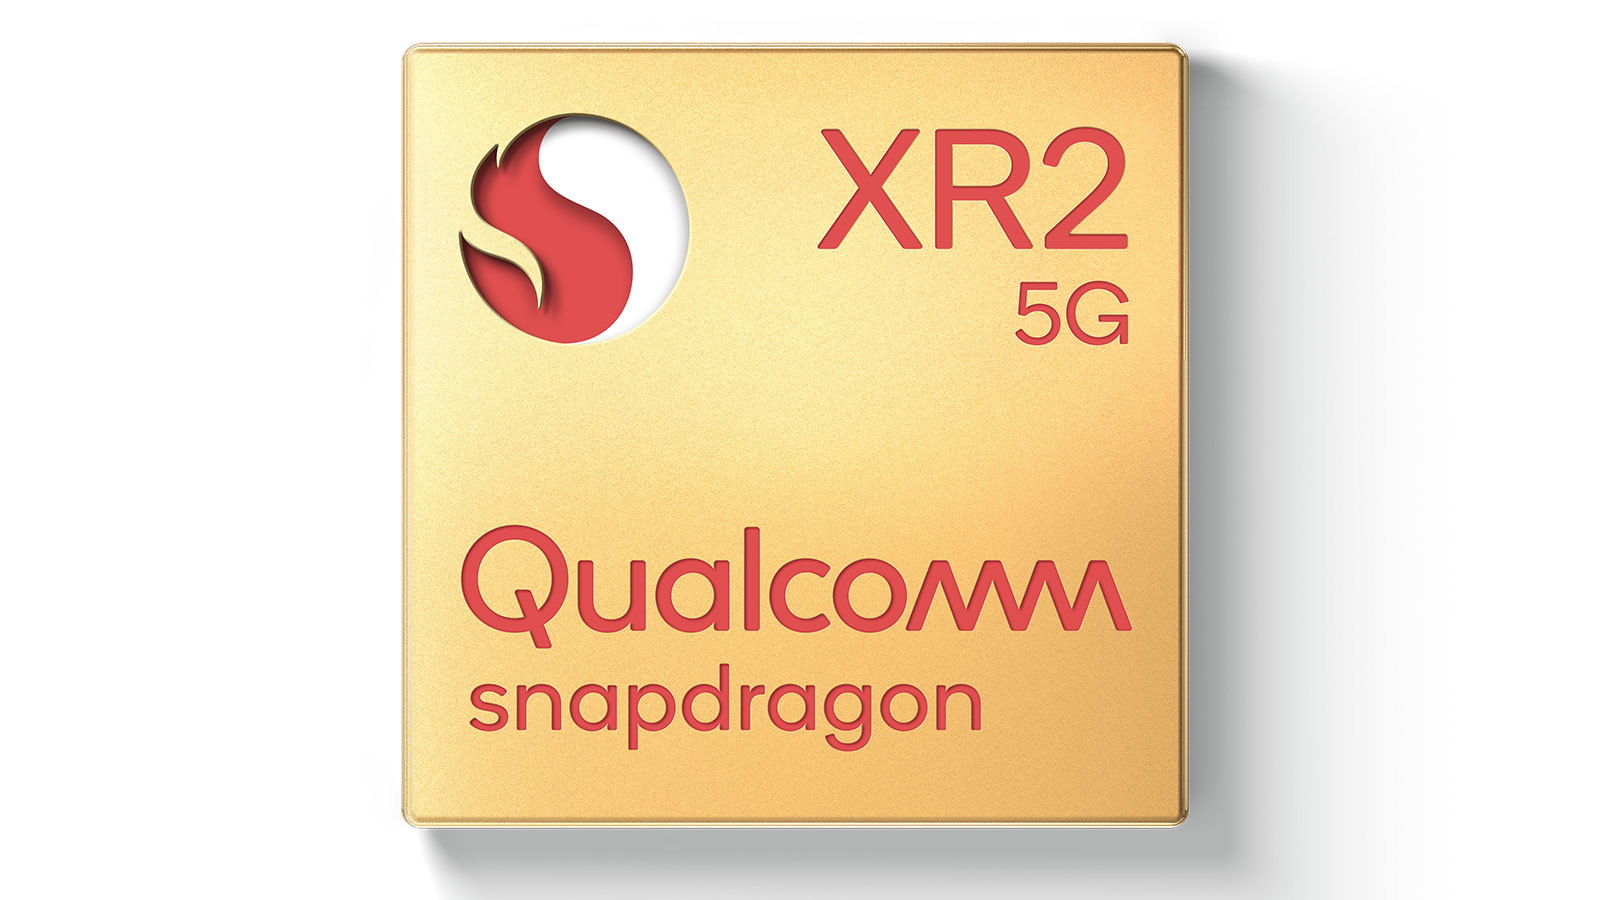 Qualcomm Snapdragon XR2 chip gold